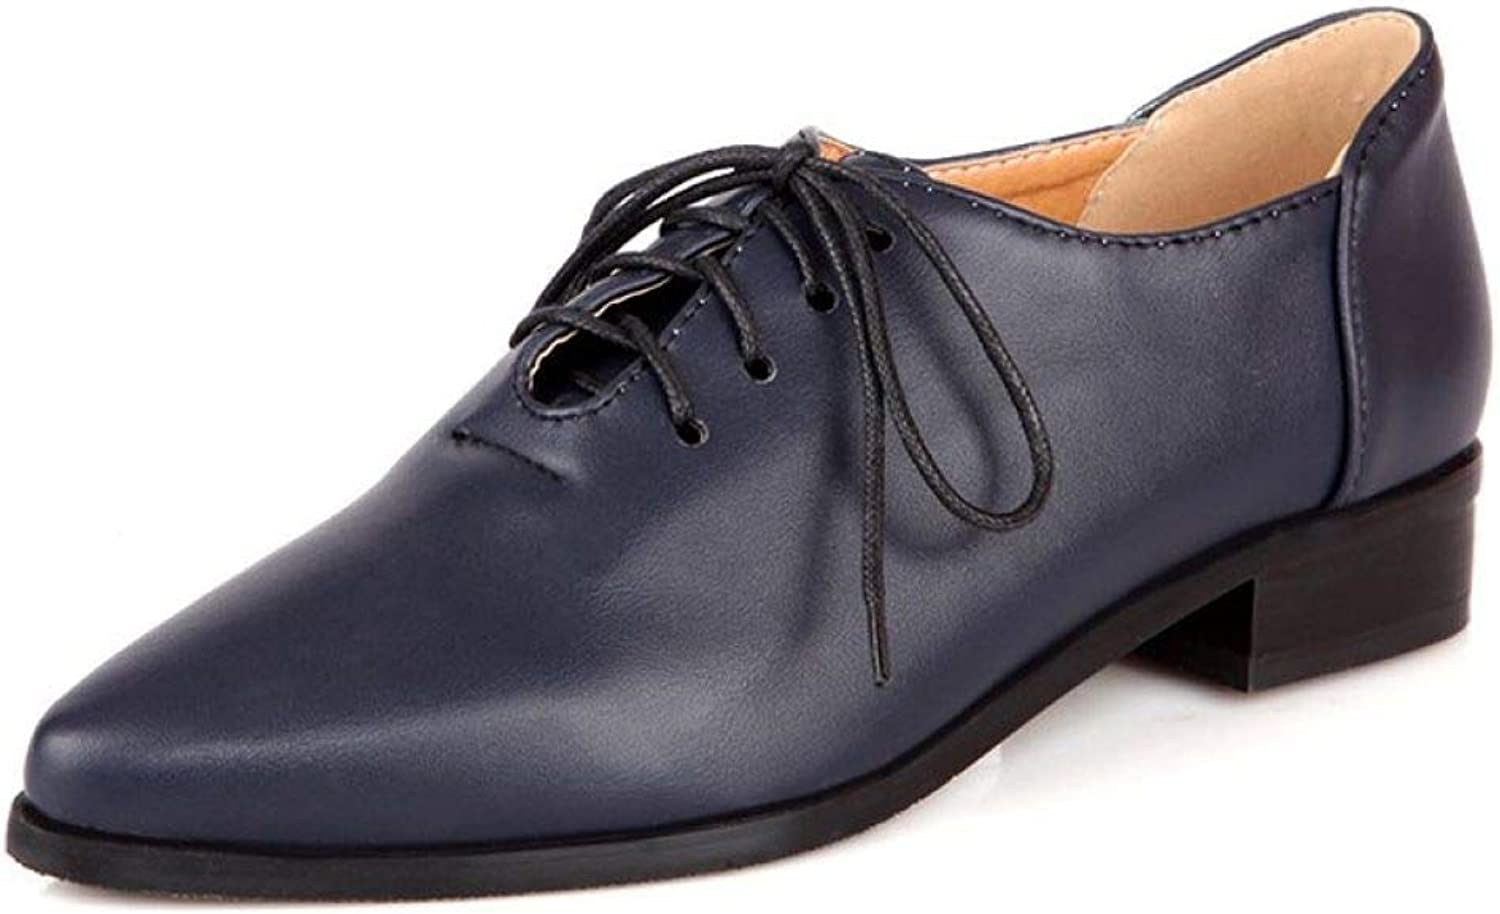 Women's Pointed Toe Leather Oxfords Low Heel Lace Up Plain Tone Flat Dress shoes